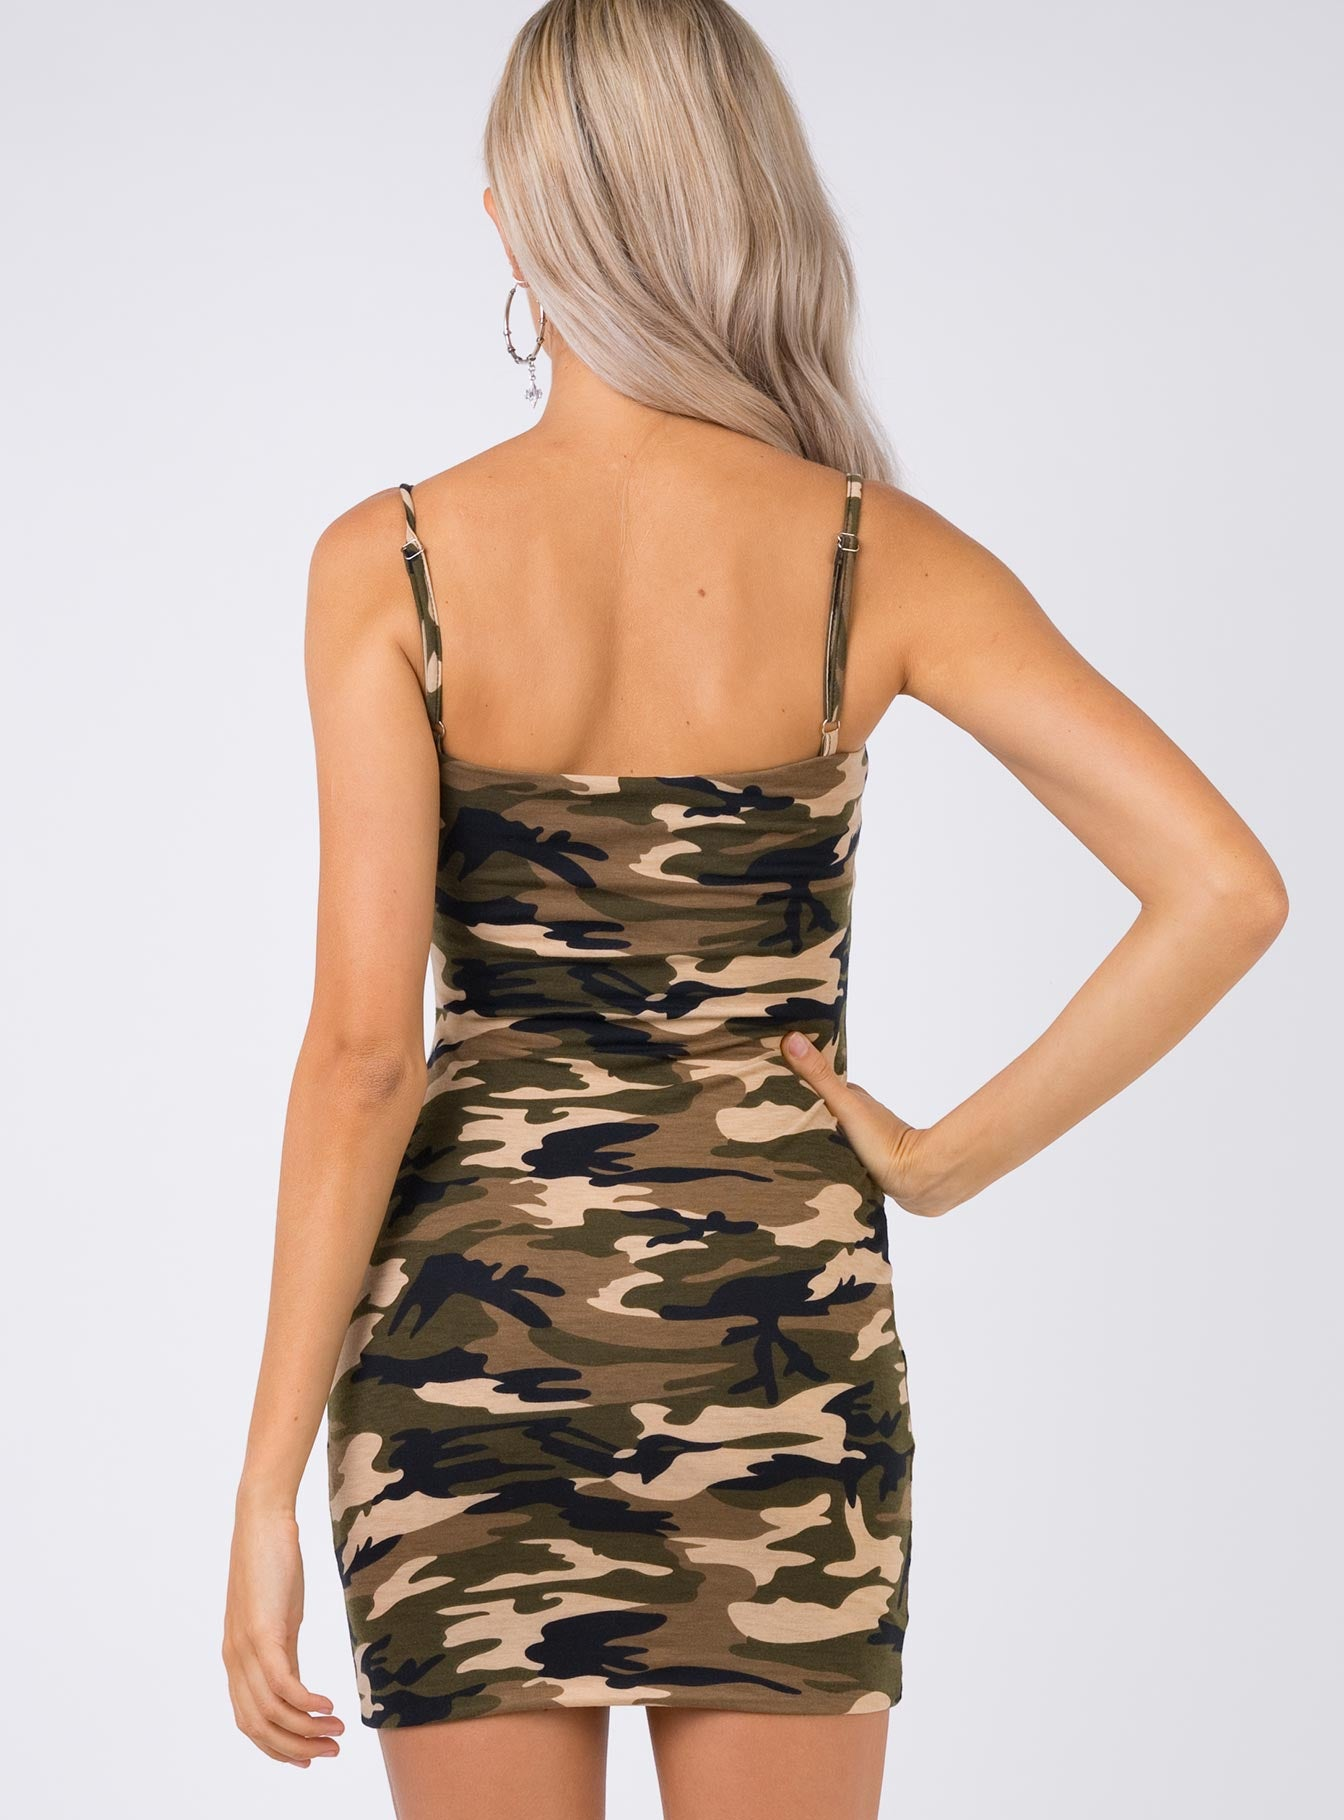 G.I. Jane Mini Dress